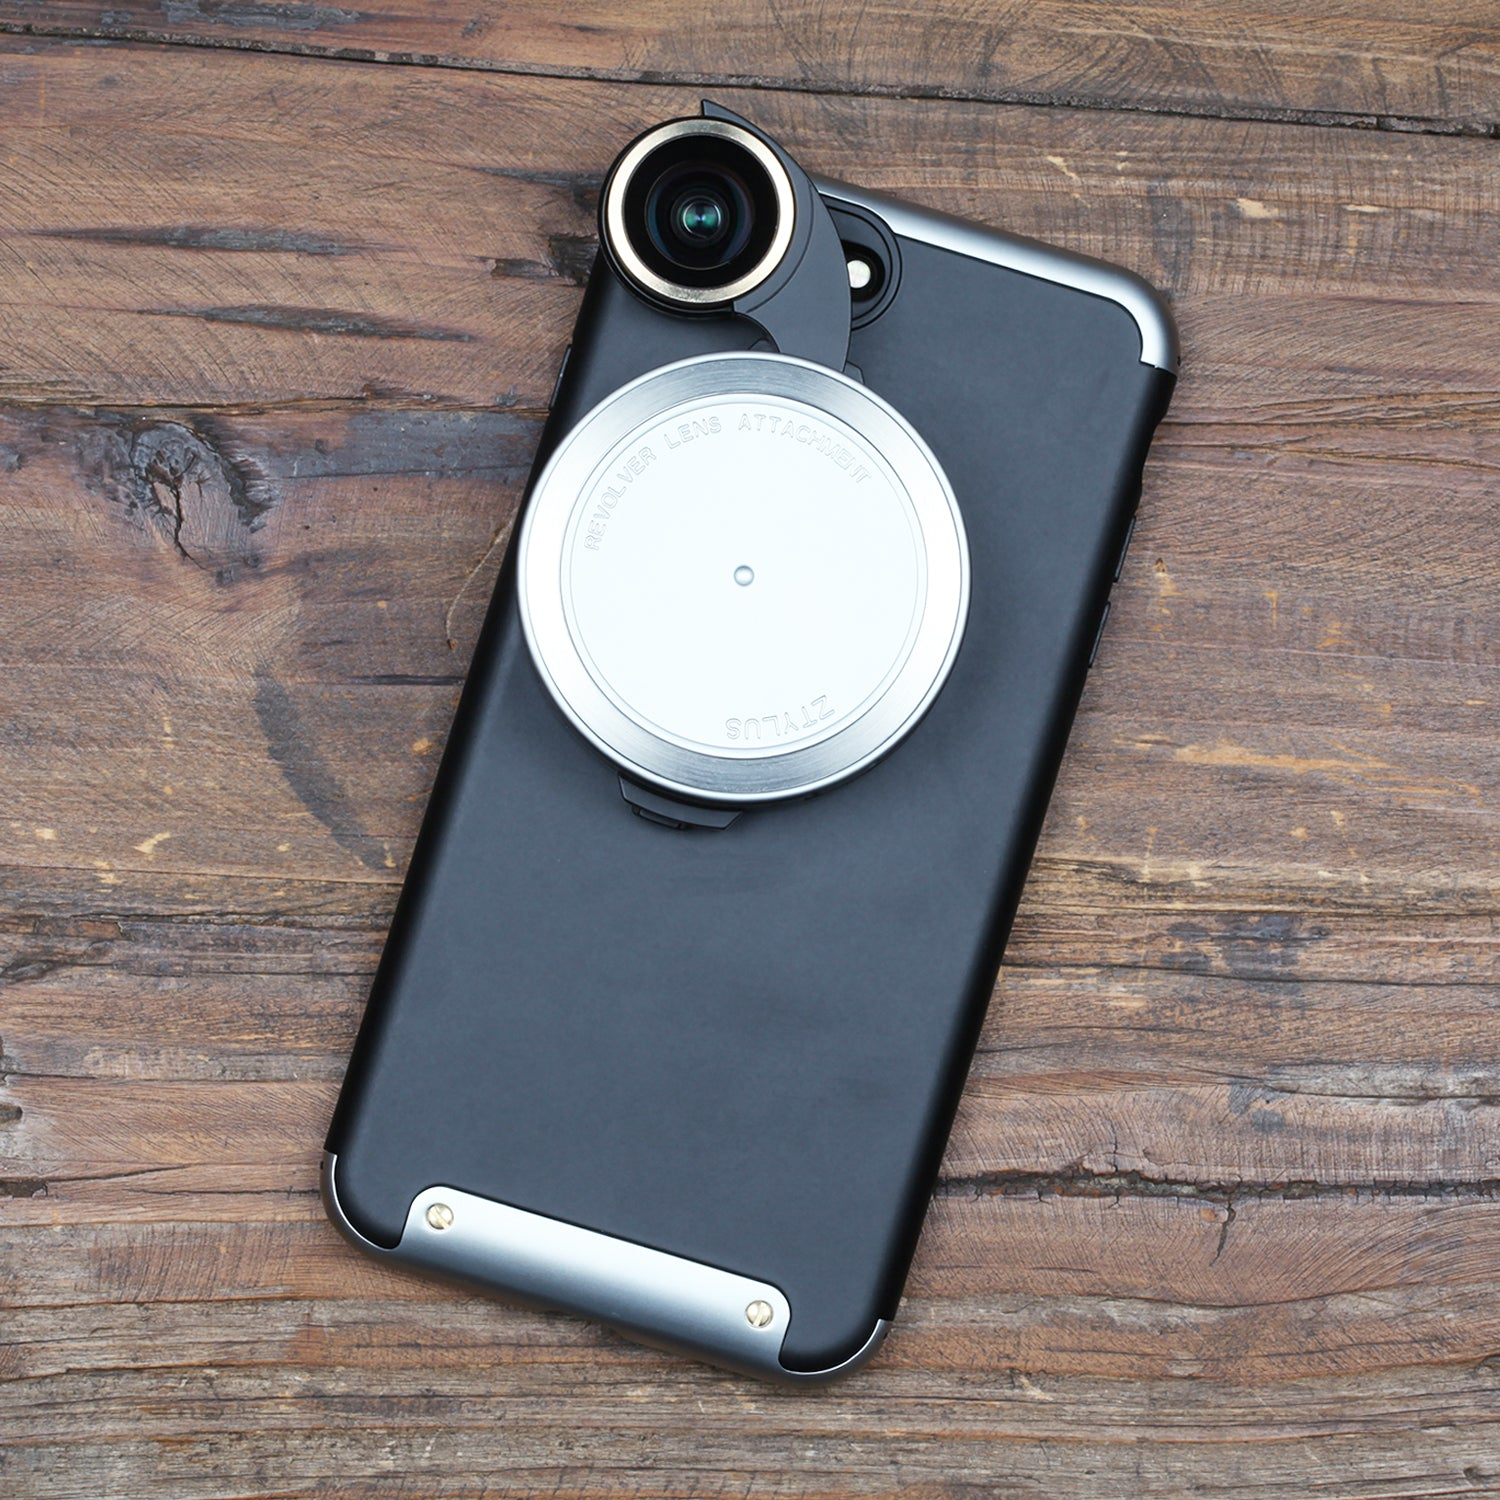 Revolver Lens Kit for iPhone 7 Plus - Silver Edition